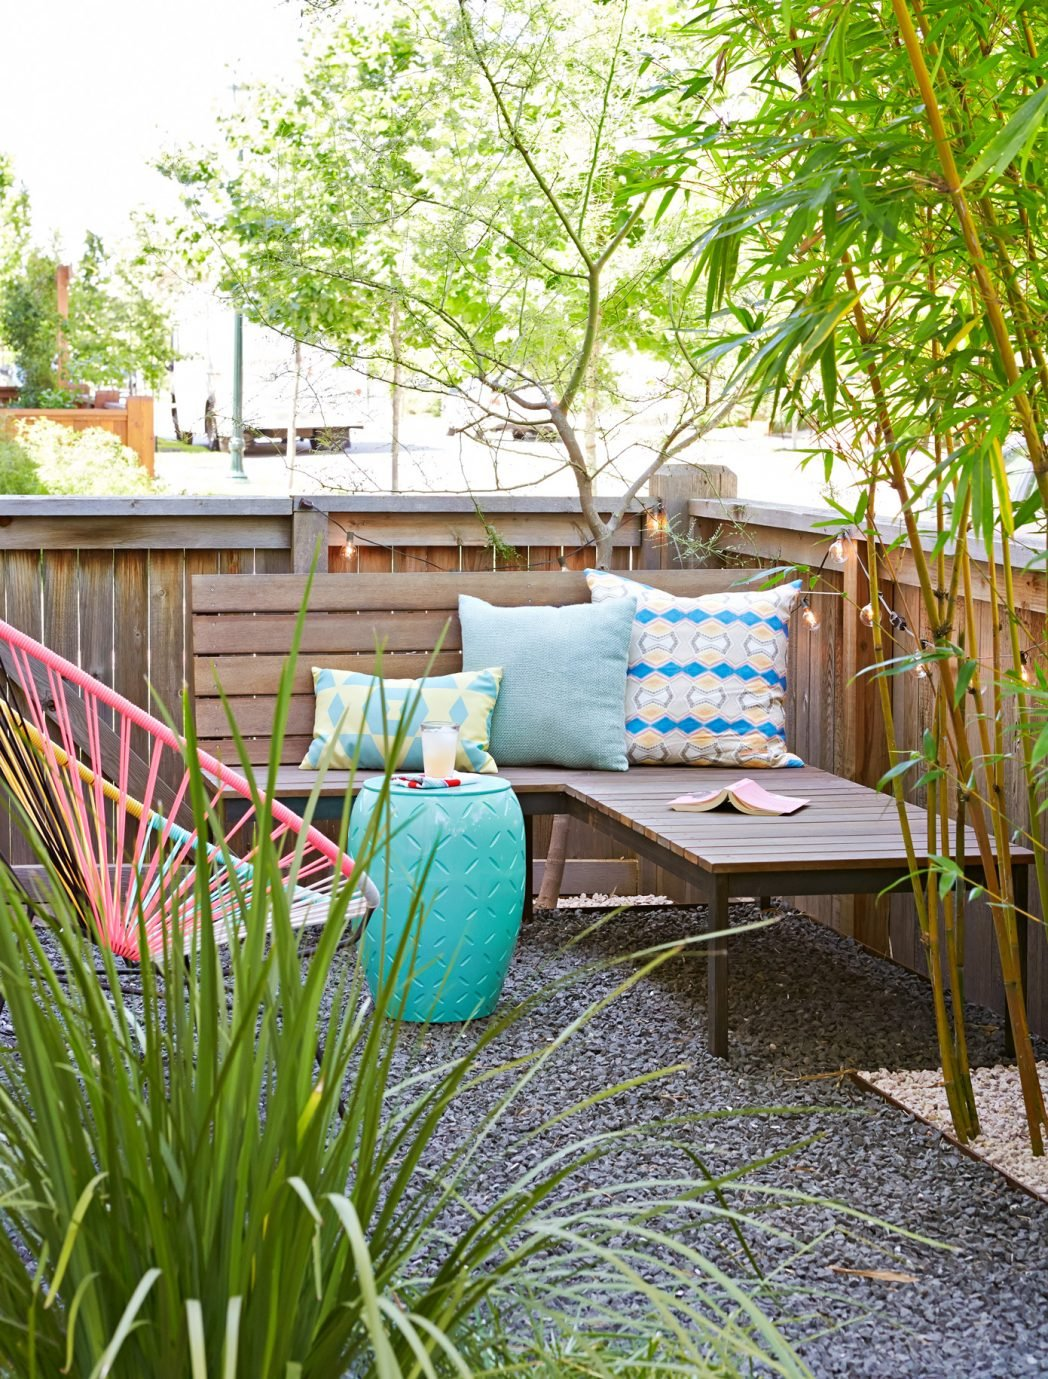 backyard ideas makeover on a budget patio seating bamboo 102605130 in cheap backyard makeover ideas